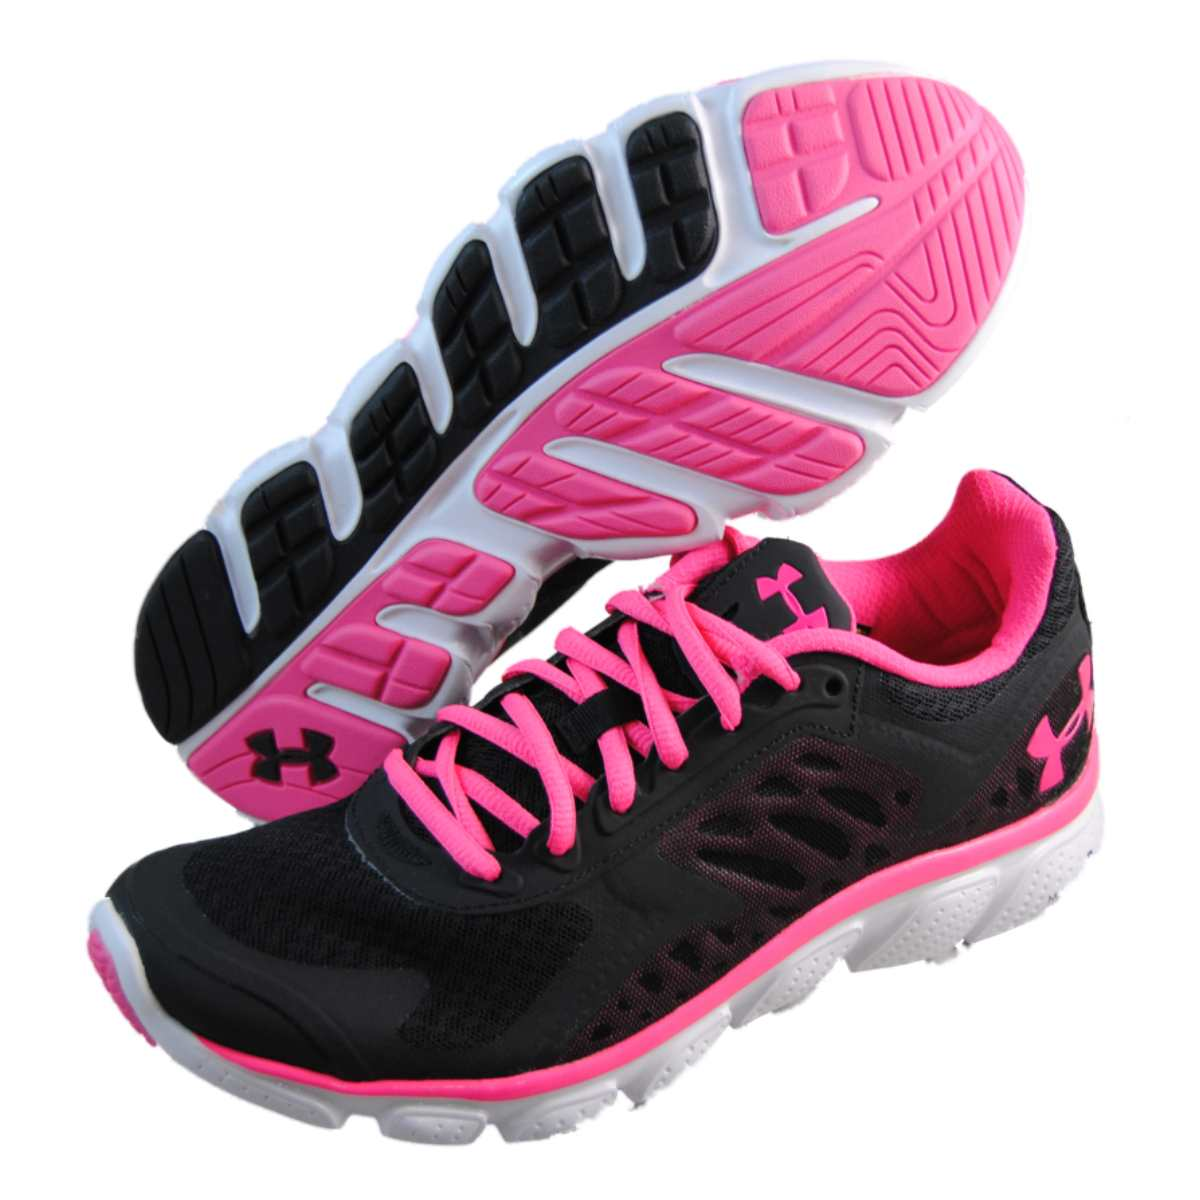 Buy Cheap Under Armour Pink Shoes All Black Kobe Shoes